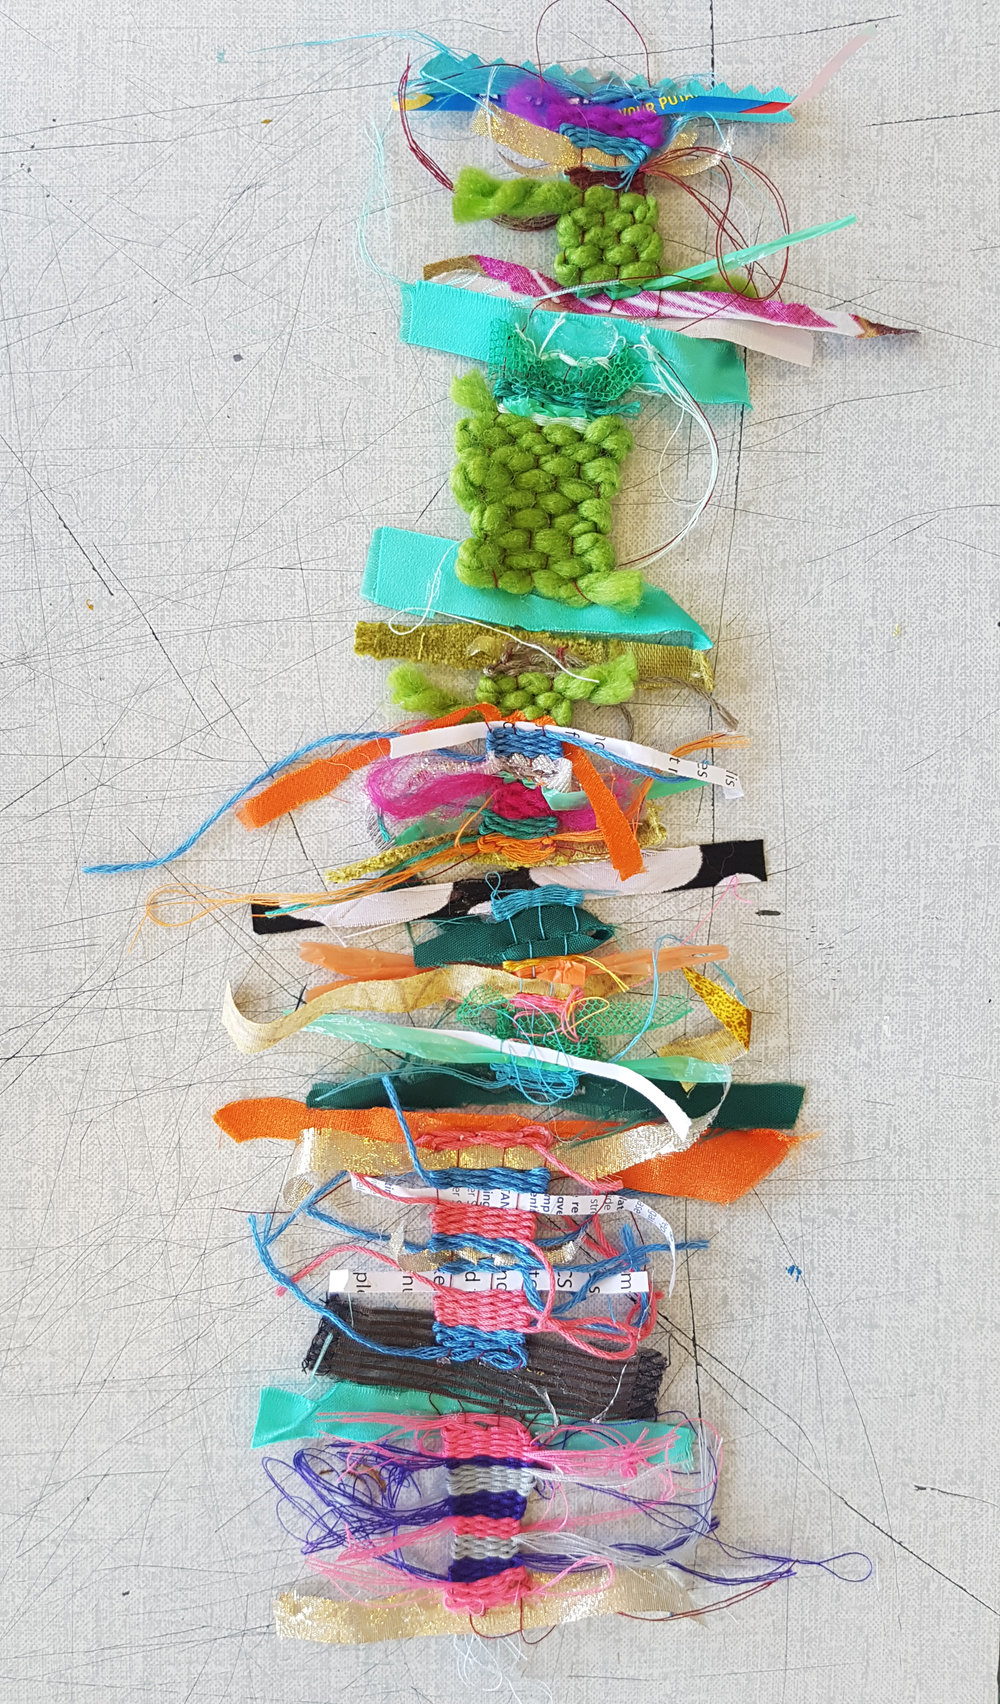 Collaborative matchbox weaving project using recycled materials and experimenting with textures.